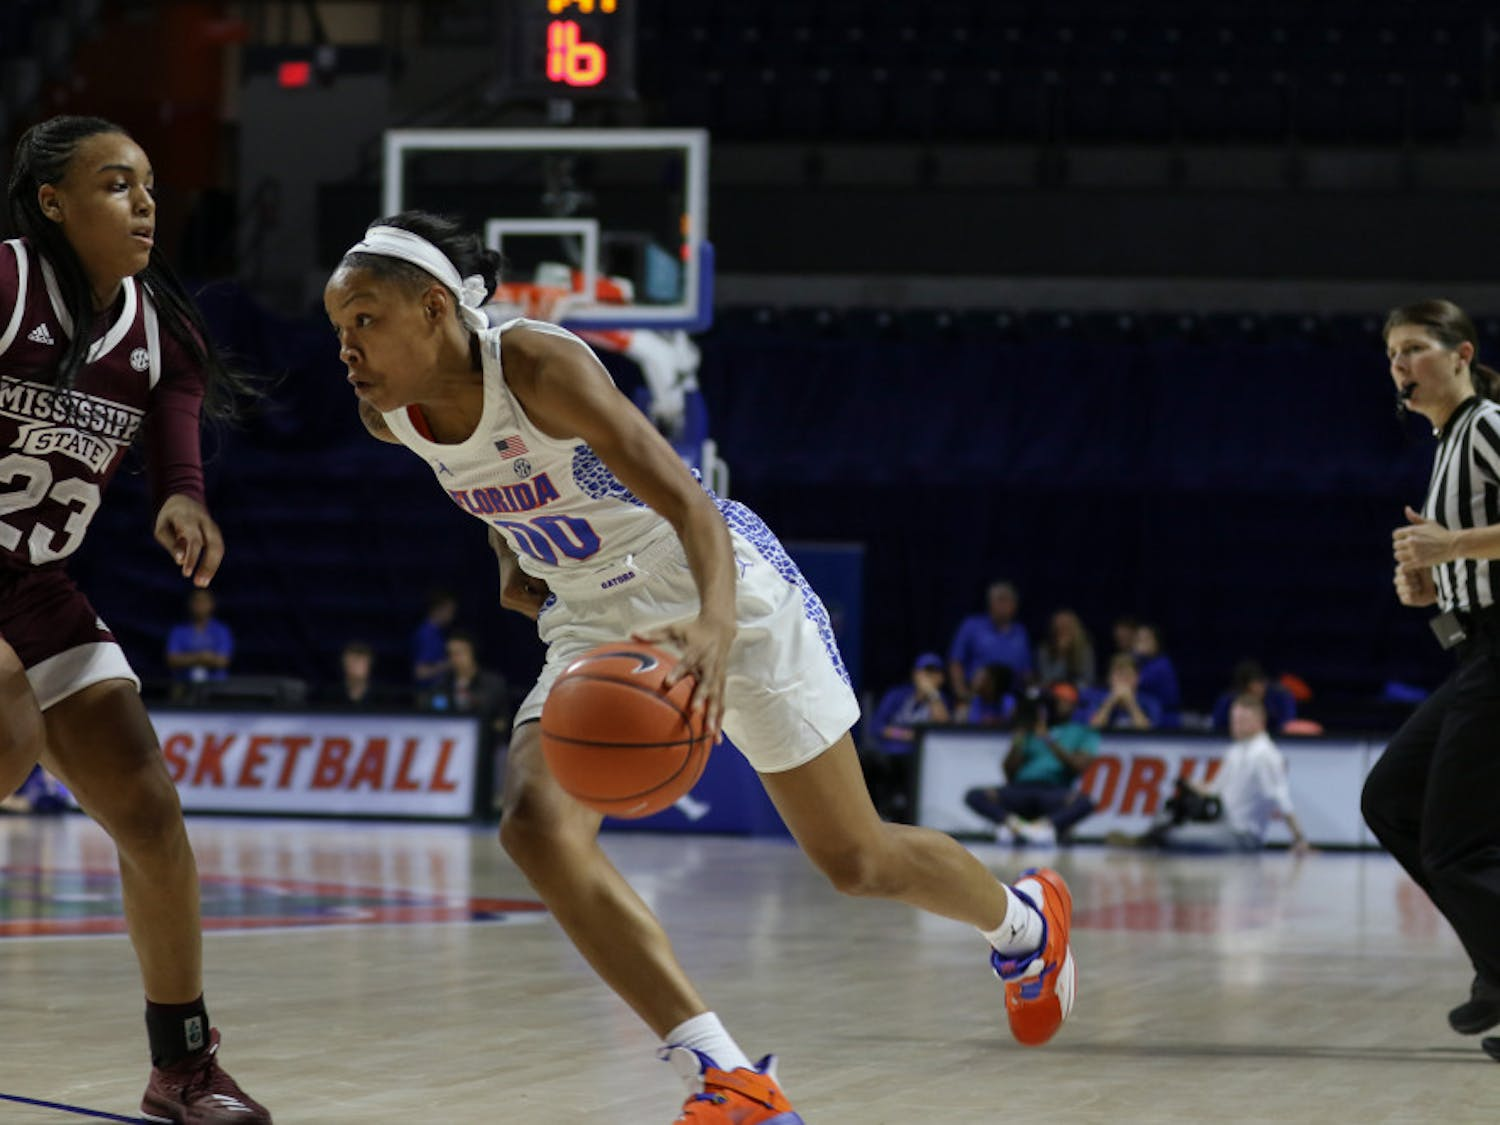 UF guard Delicia Washington scored seven points in Florida's 90-42 loss to Mississippi State on Jan. 24.